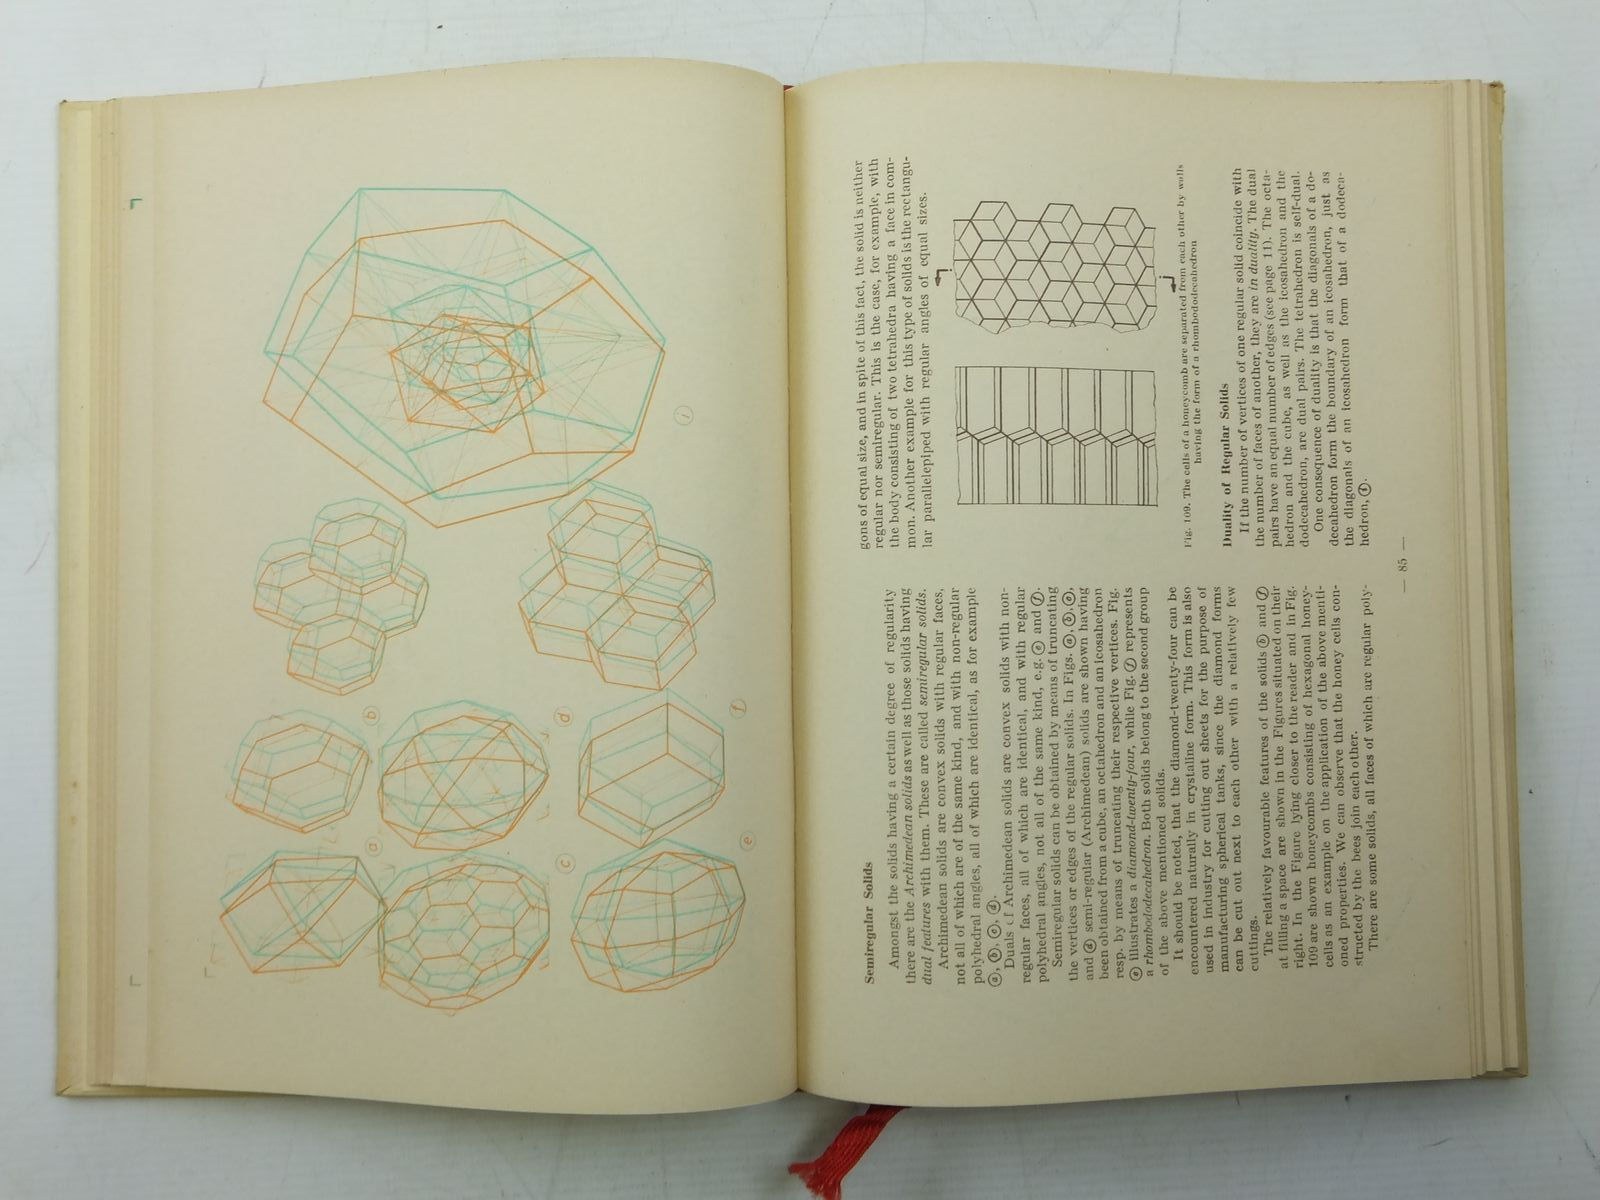 DESCRIPTIVE GEOMETRY WITH THREE-DIMENSIONAL FIGURES written